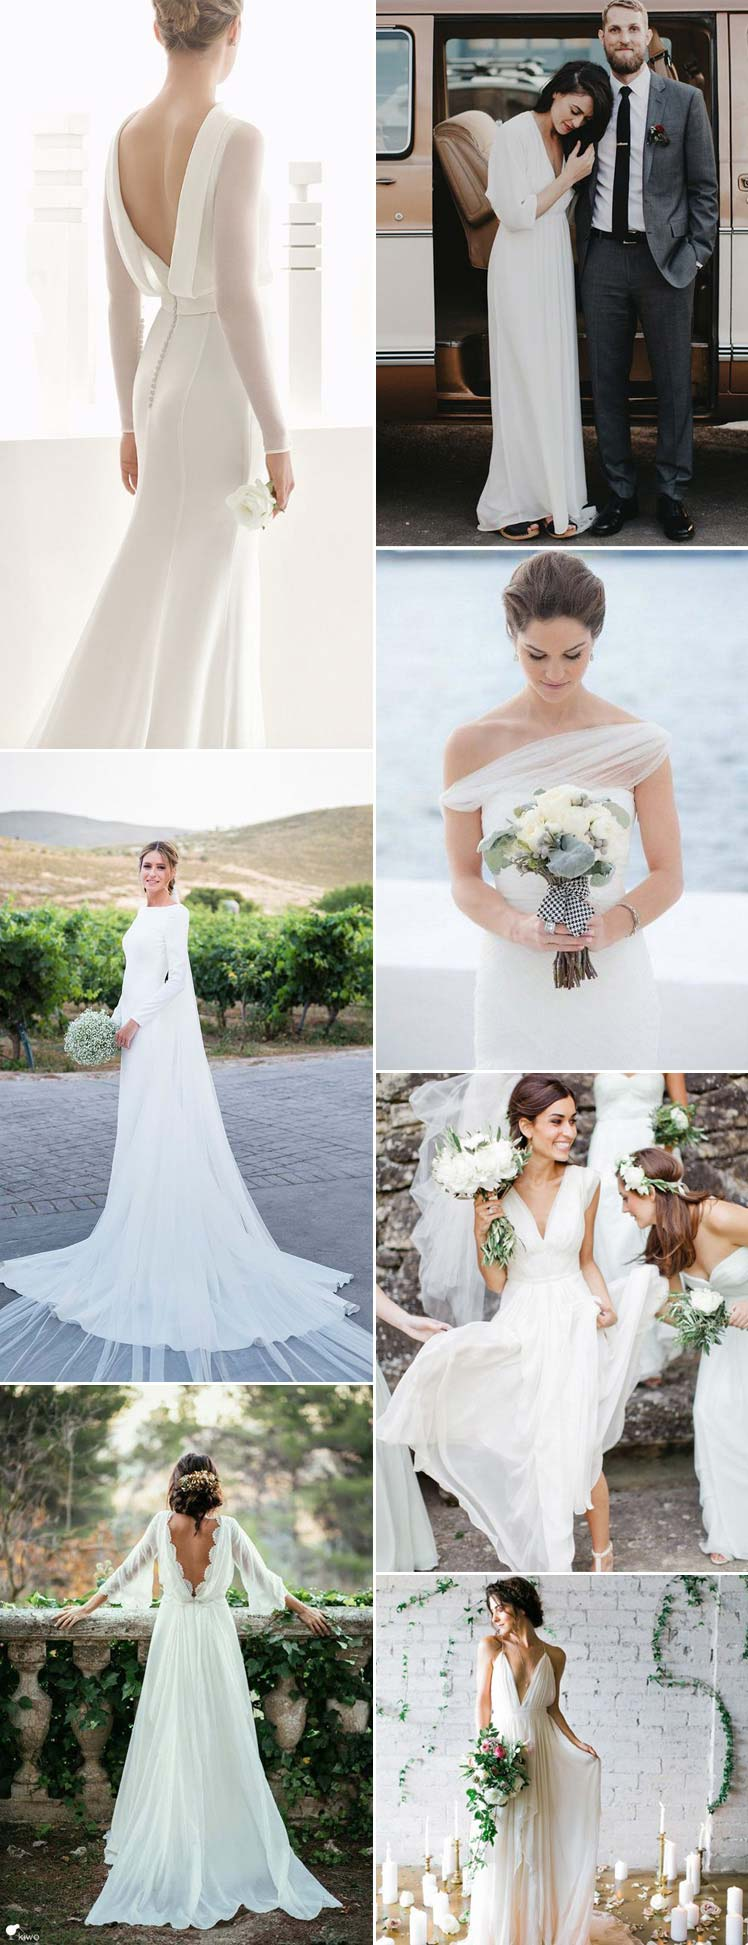 elegant and plain wedding dresses